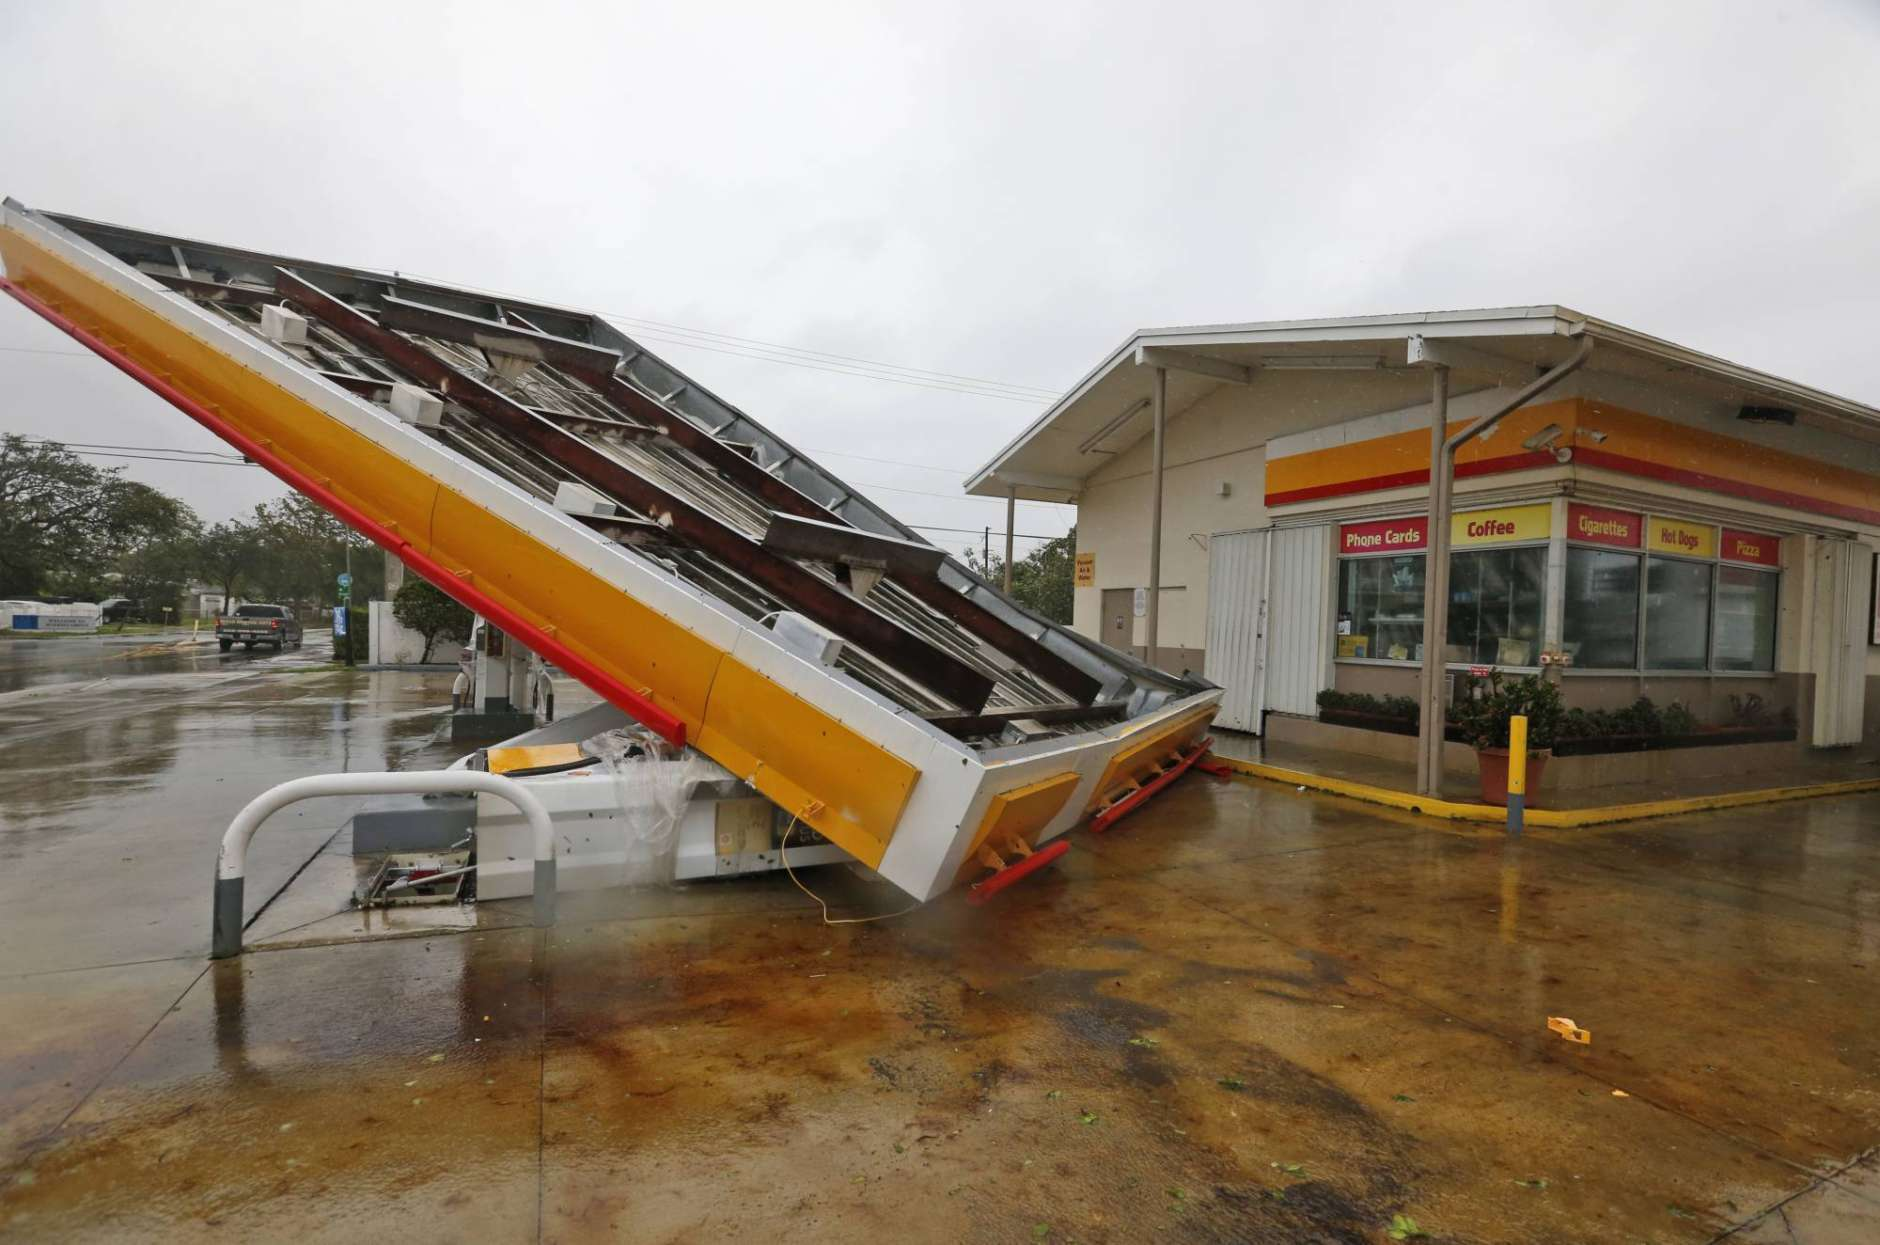 The metal canopy at a gasoline station is shown after it was overturned by high winds brought on by Hurricane Irma, Sunday, Sept. 10, 2017, in North Miami, Fla. (AP Photo/Wilfredo Lee)